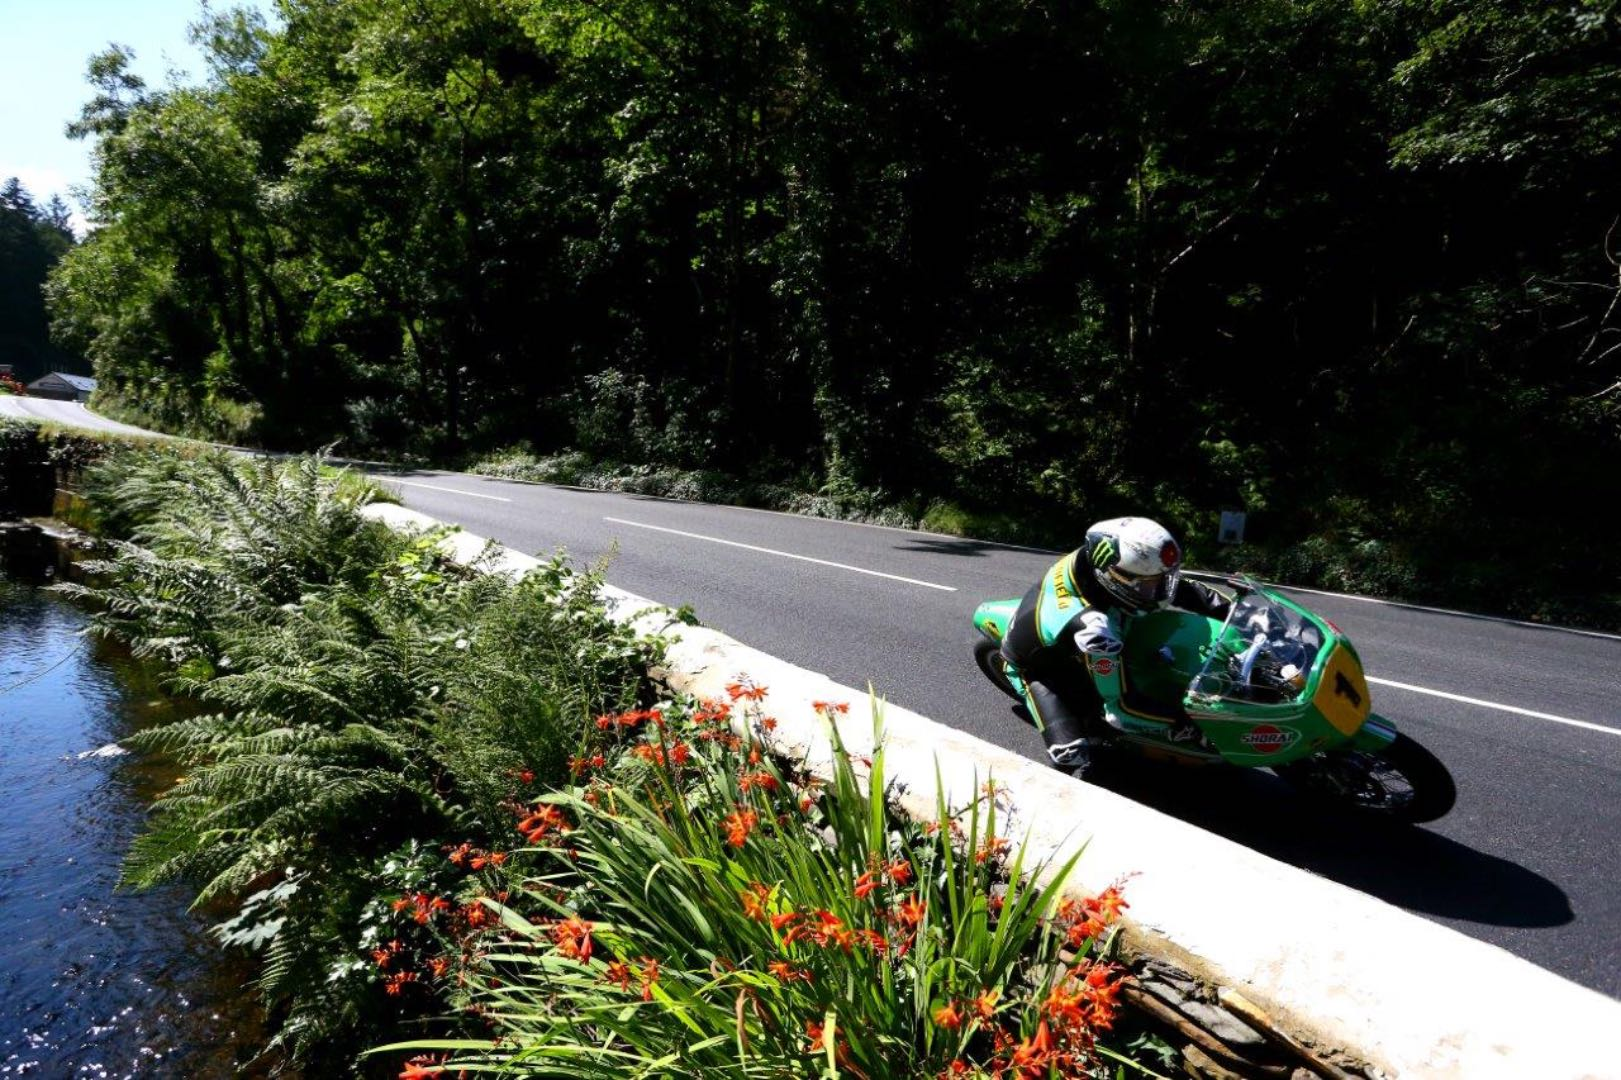 McGuinness Returns to the Mountain with Classic TT Senior Win on Paton